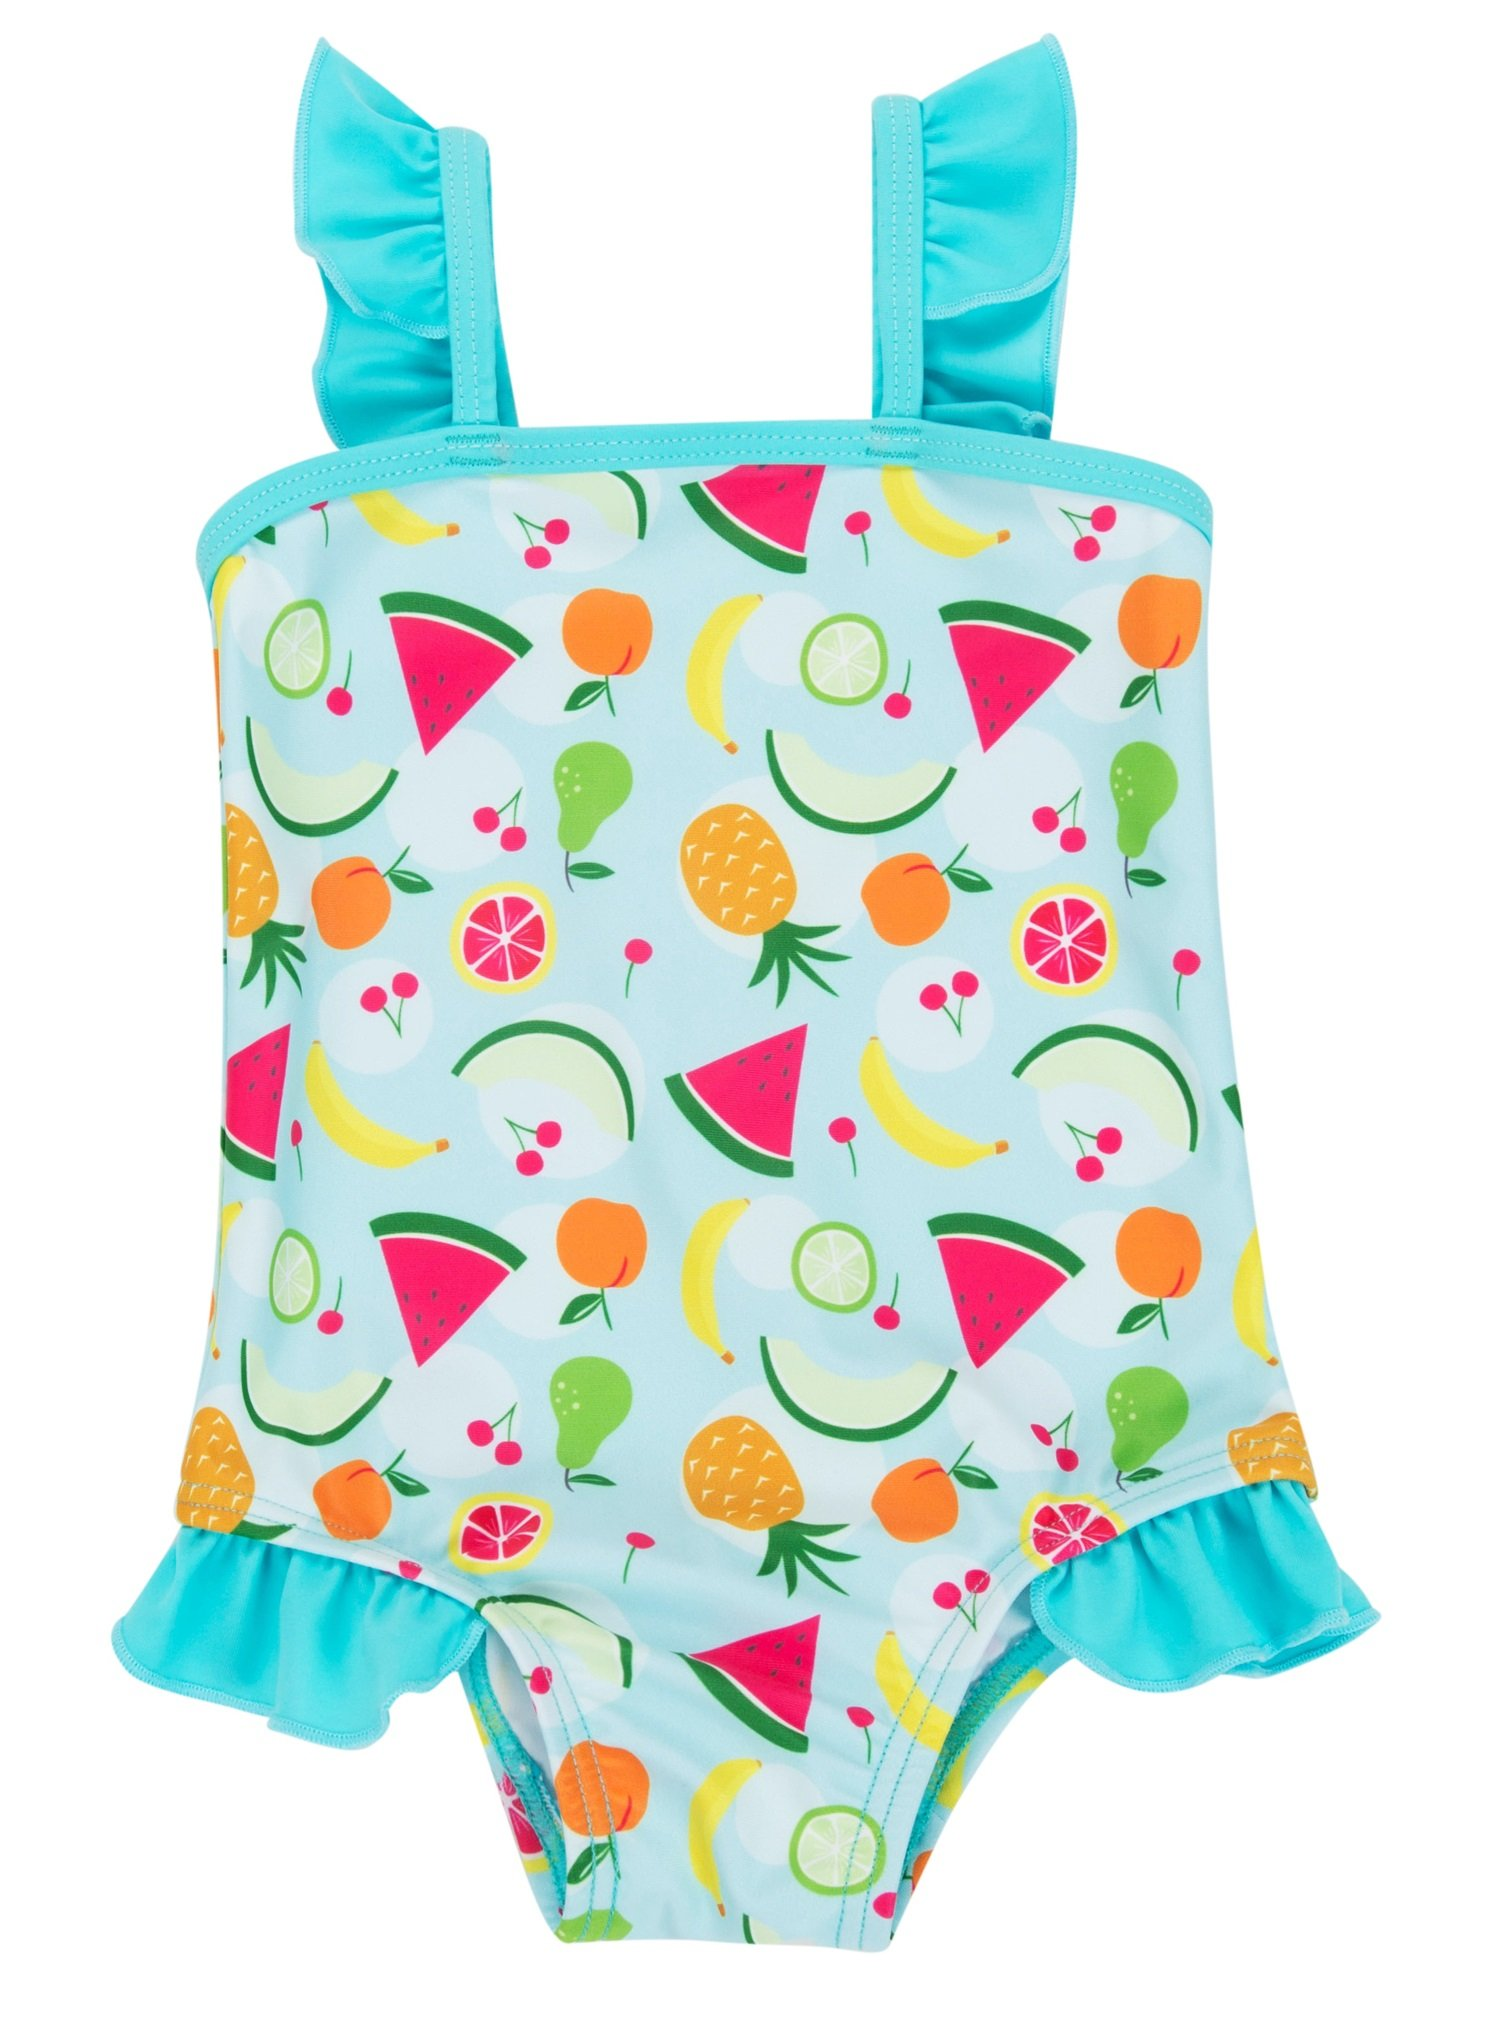 ATTRACO Girls Summer one Piece Bathing Suit Ruffle Swimsuit Blue 12-18 Months